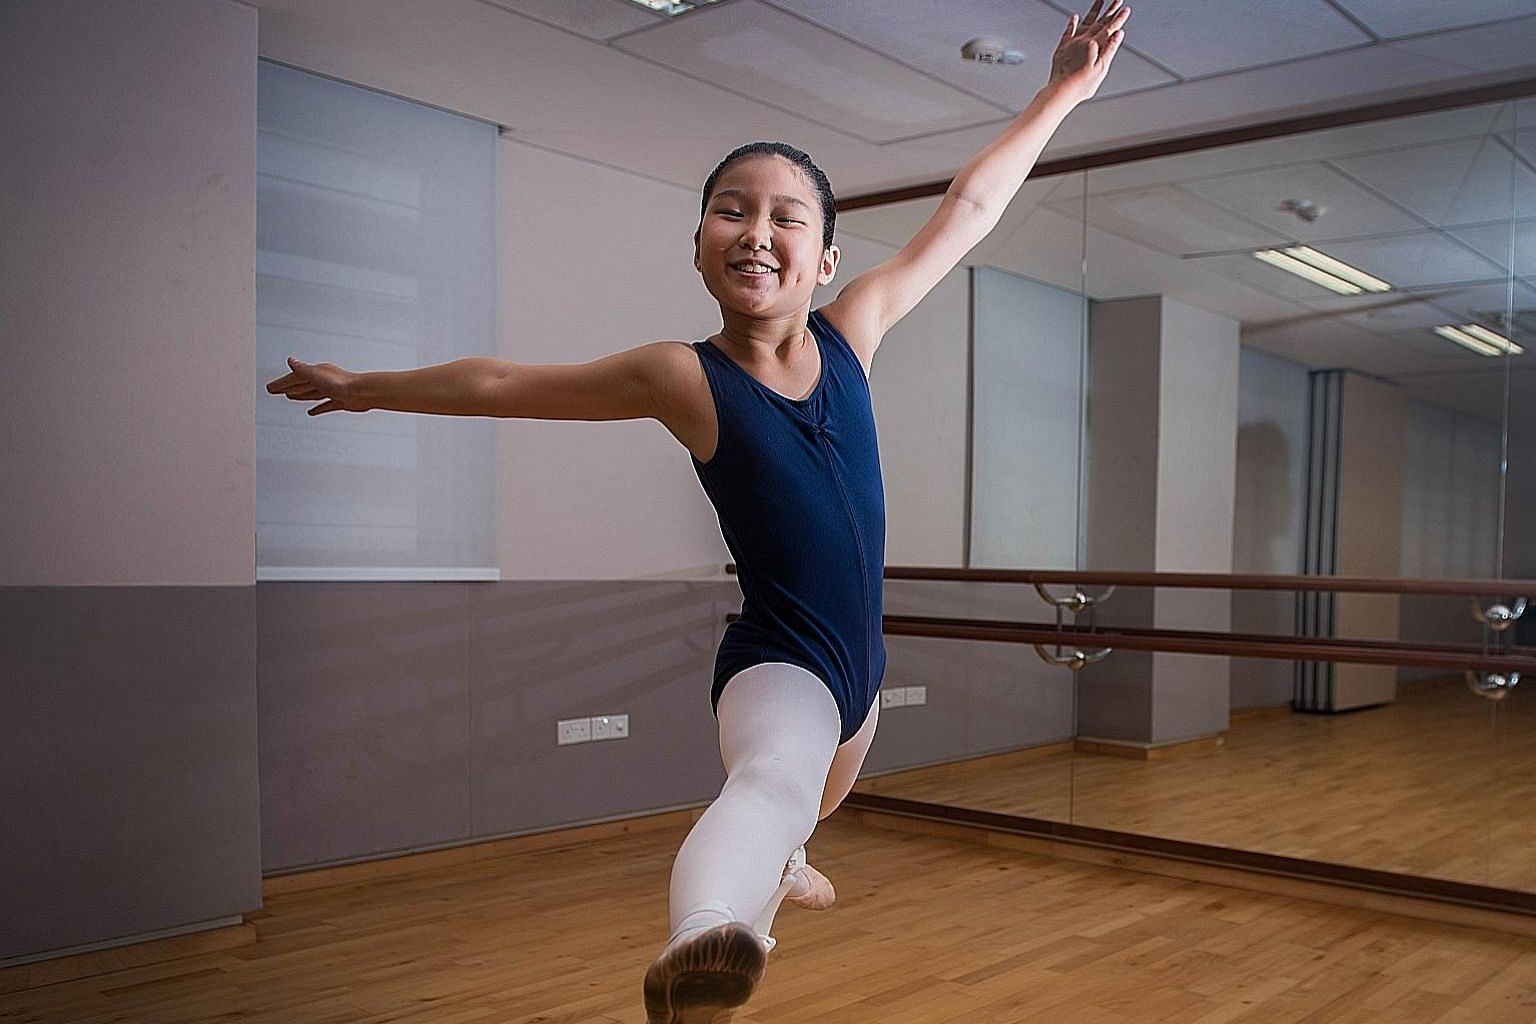 Loveval Choo took up ballet at the age of six but was forced to stop after half a year because of financial difficulties. She received the Arts Development Award last year from The School of the Arts, which has allowed her to resume weekly ballet cla